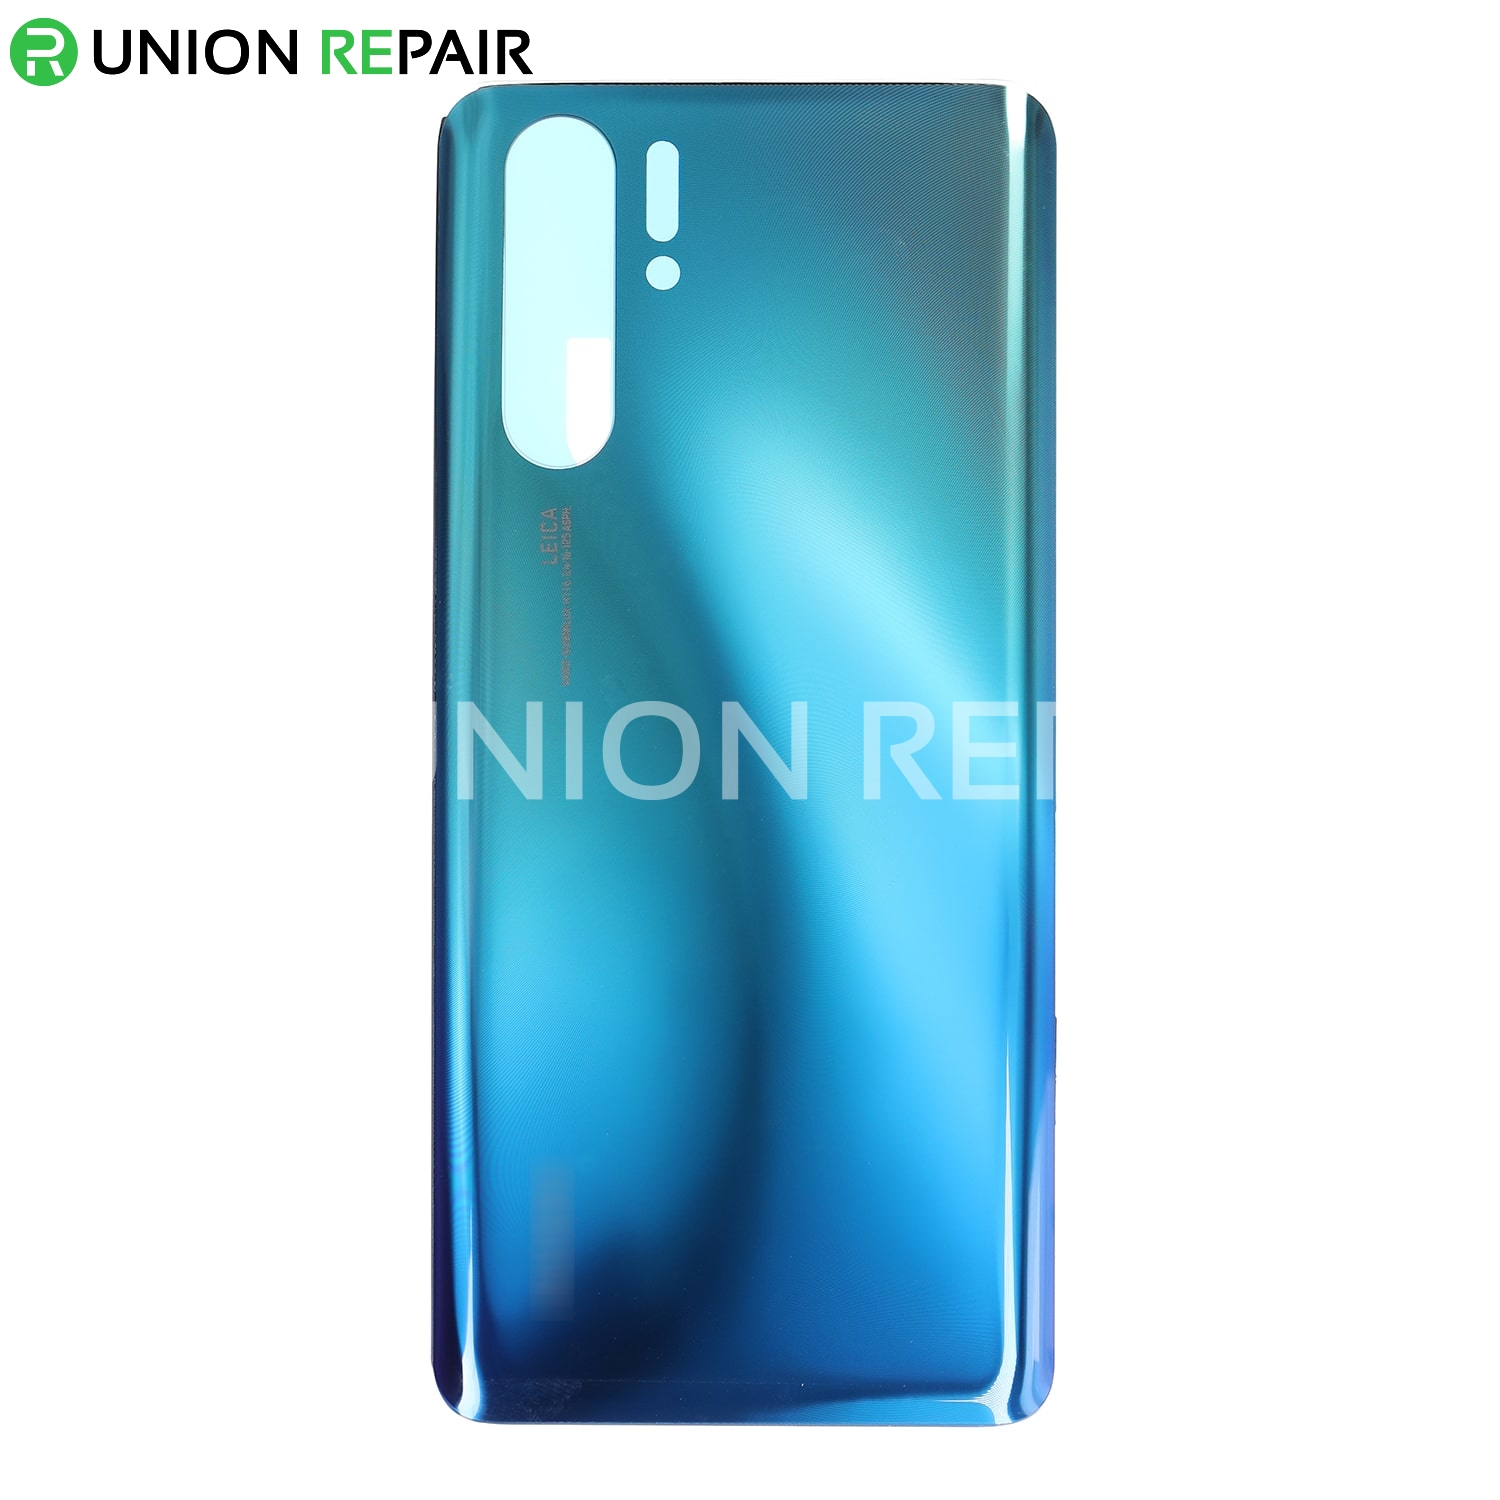 Replacement for Huawei P30 Pro Battery Door - Aurora